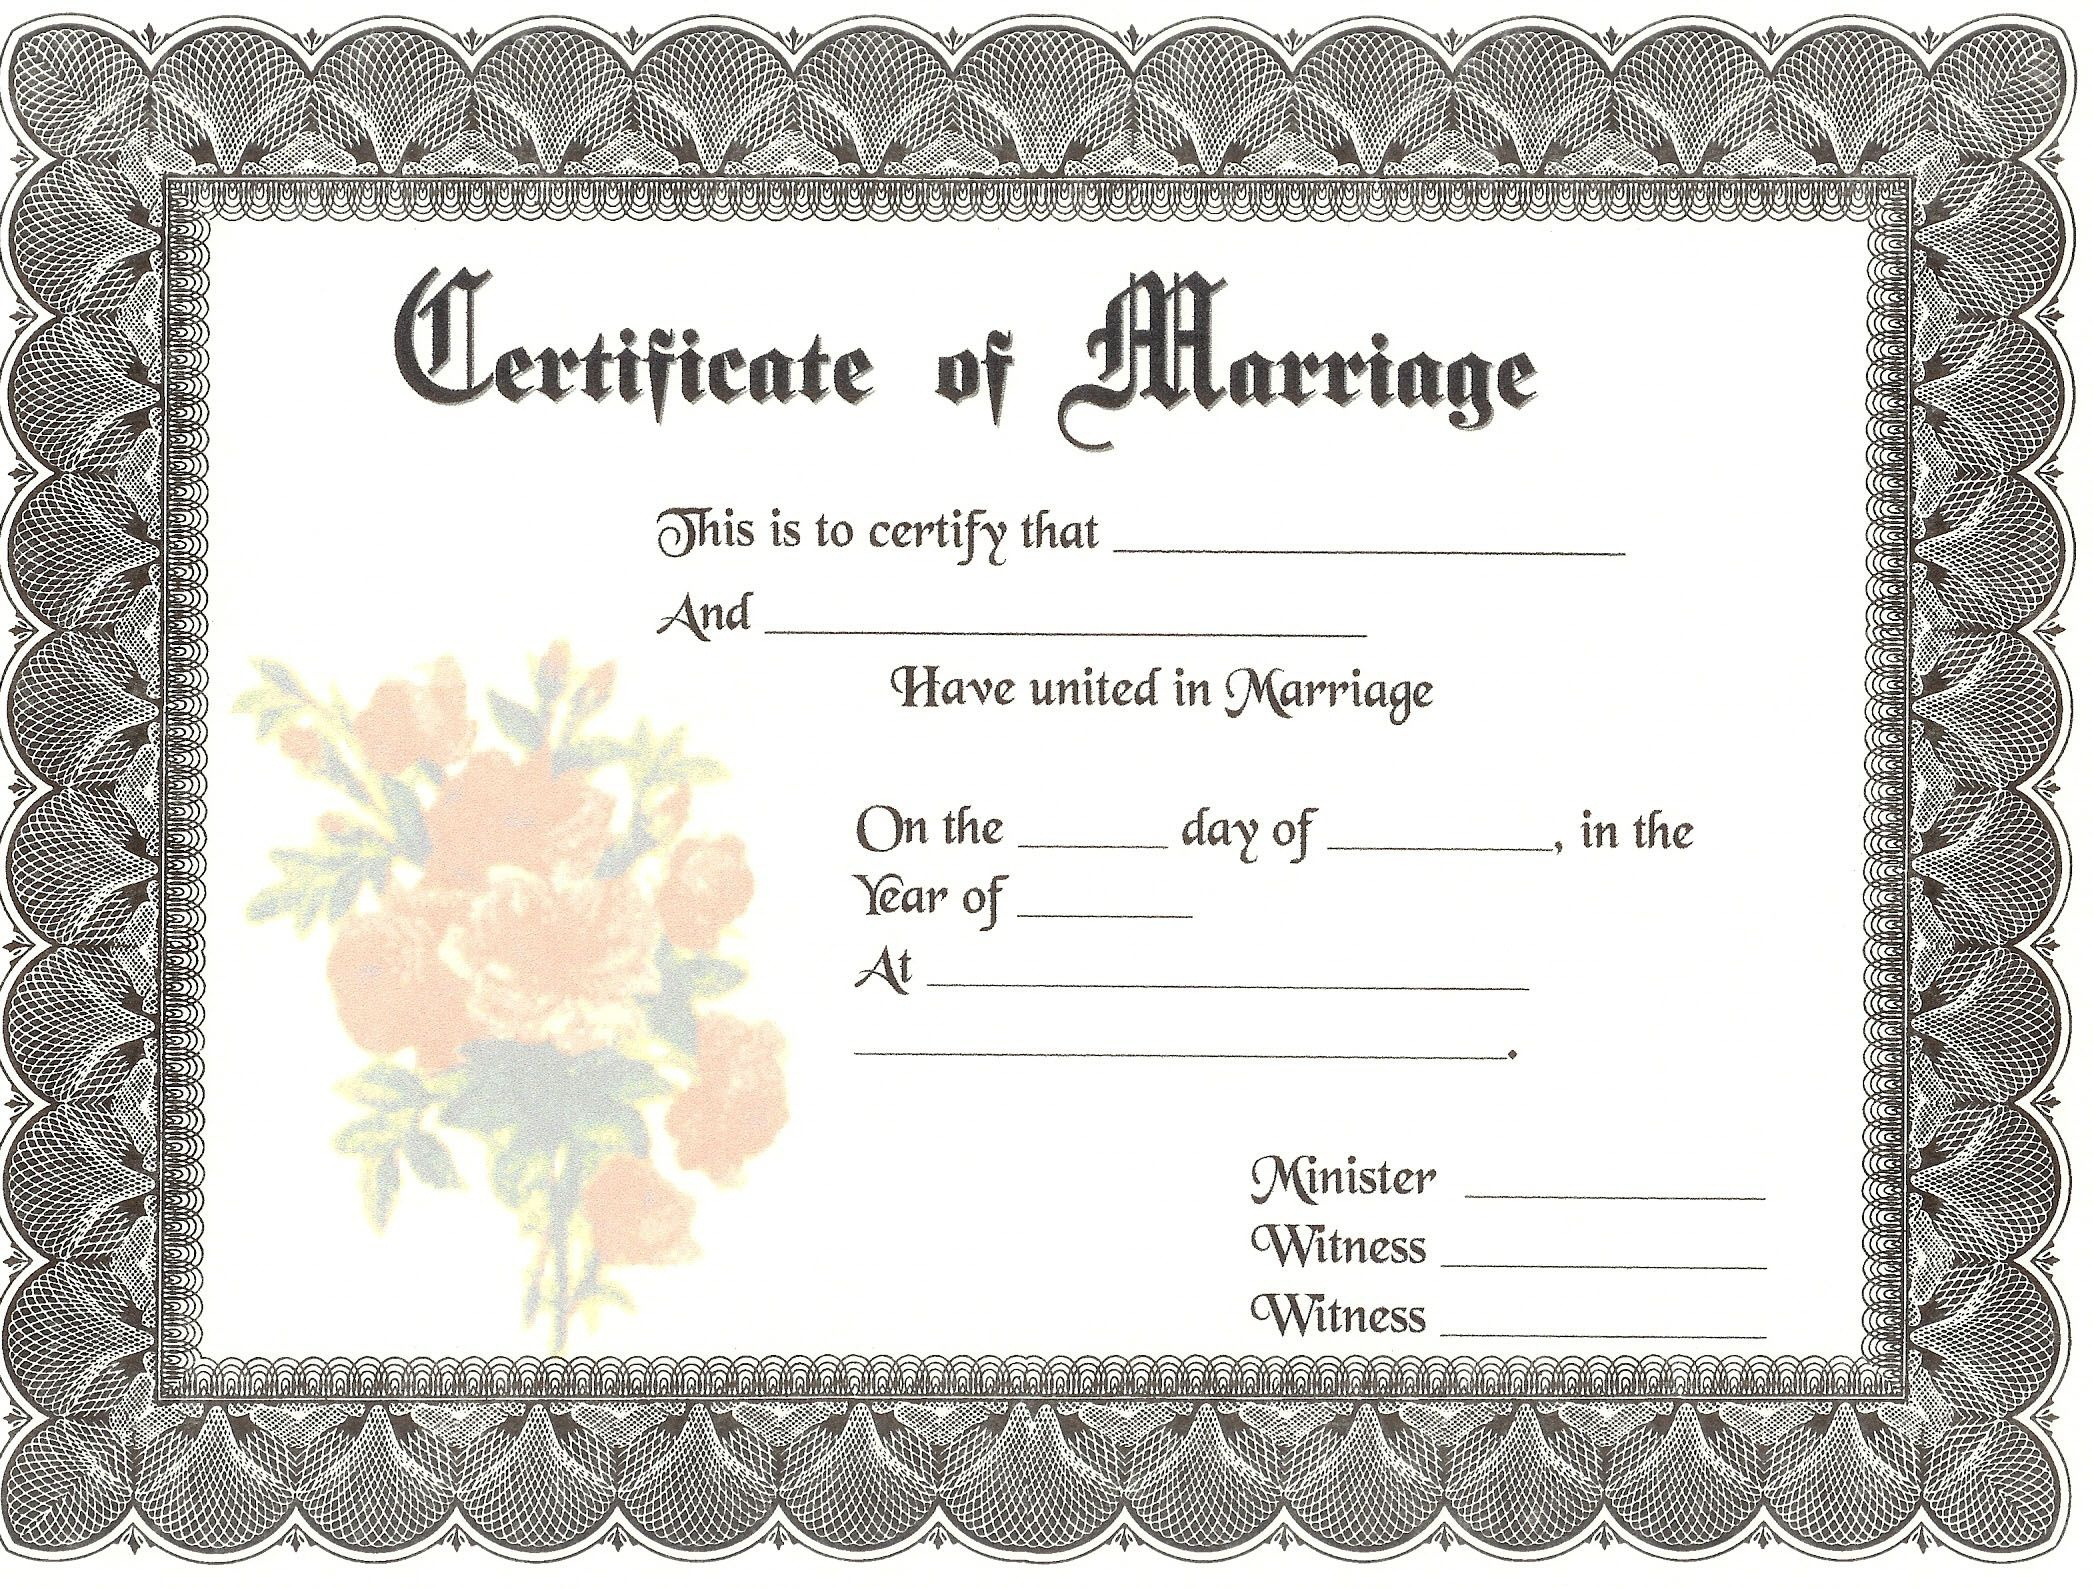 Blank Marriage Certificates | Download Blank Marriage Certificates - Fake Marriage Certificate Printable Free